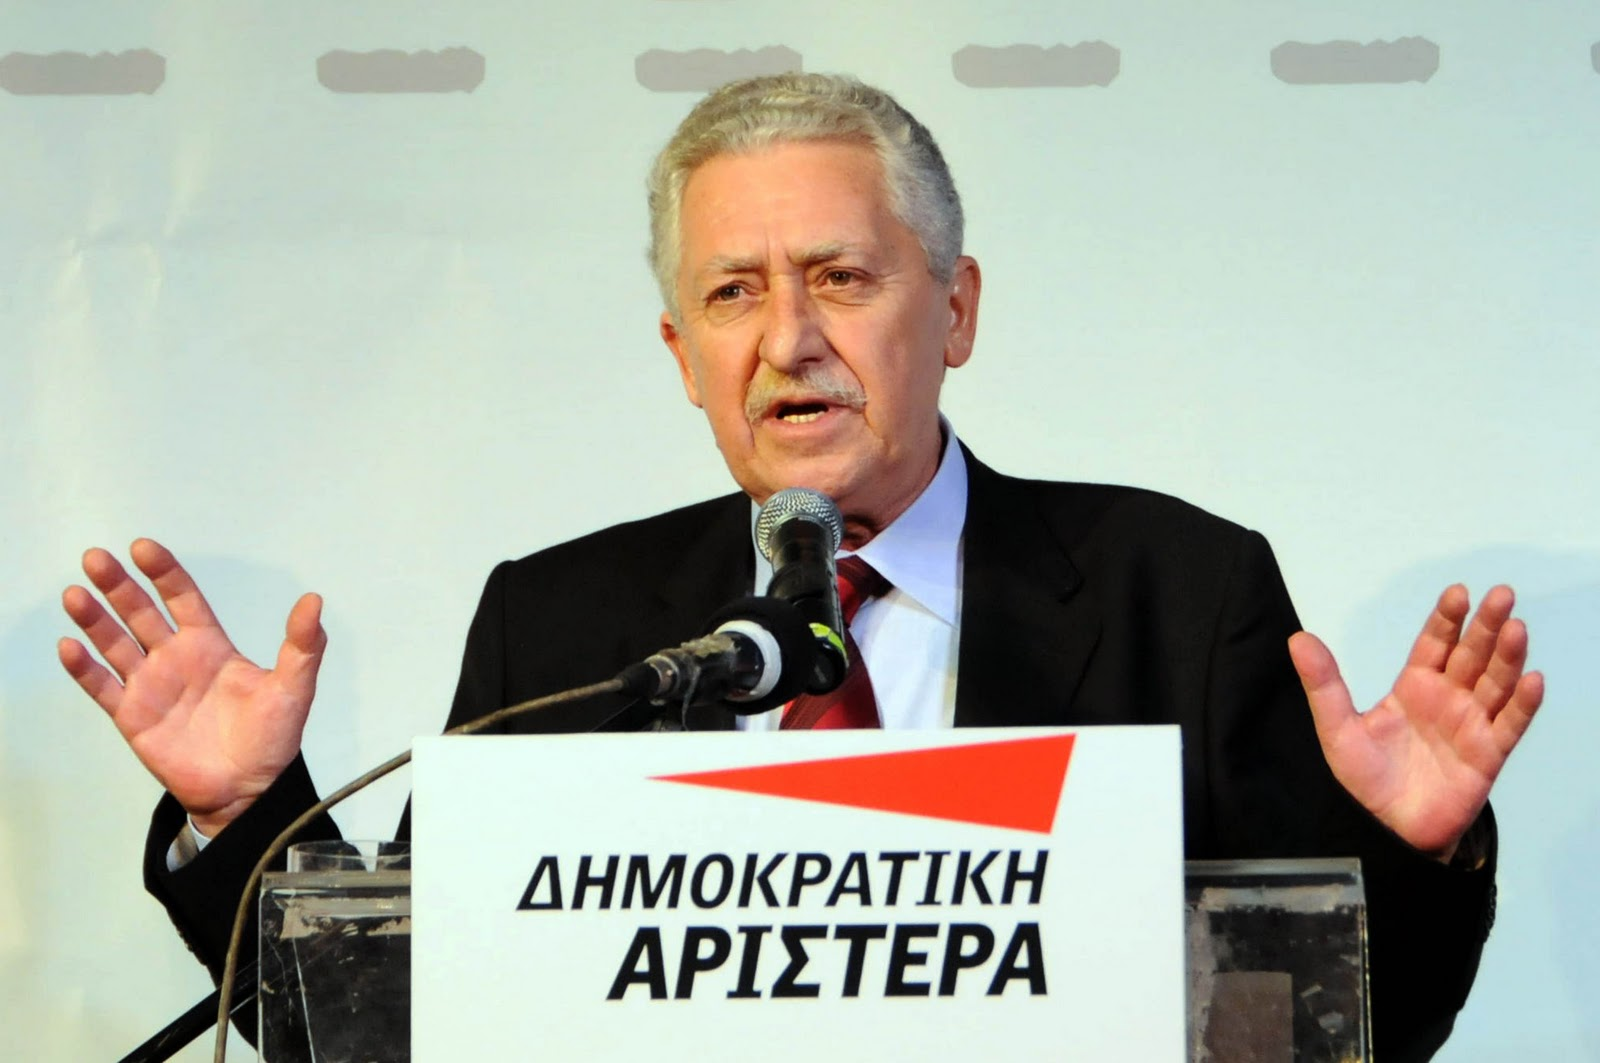 Kouvelis: The extension of the Memorandum will mean the continuation of the recession